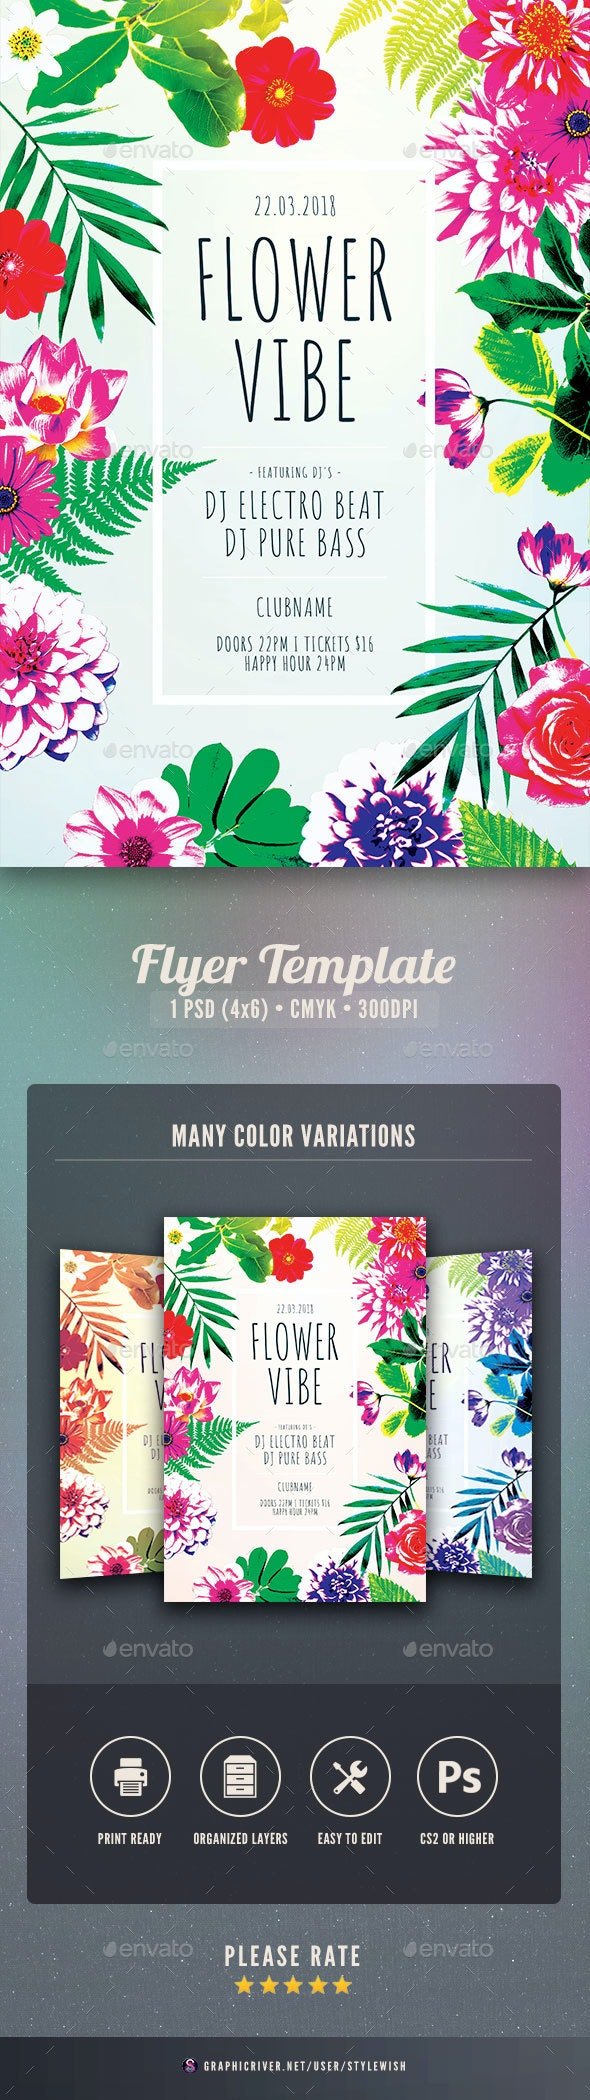 Flower Vibe Flyer - Clubs & Parties Events